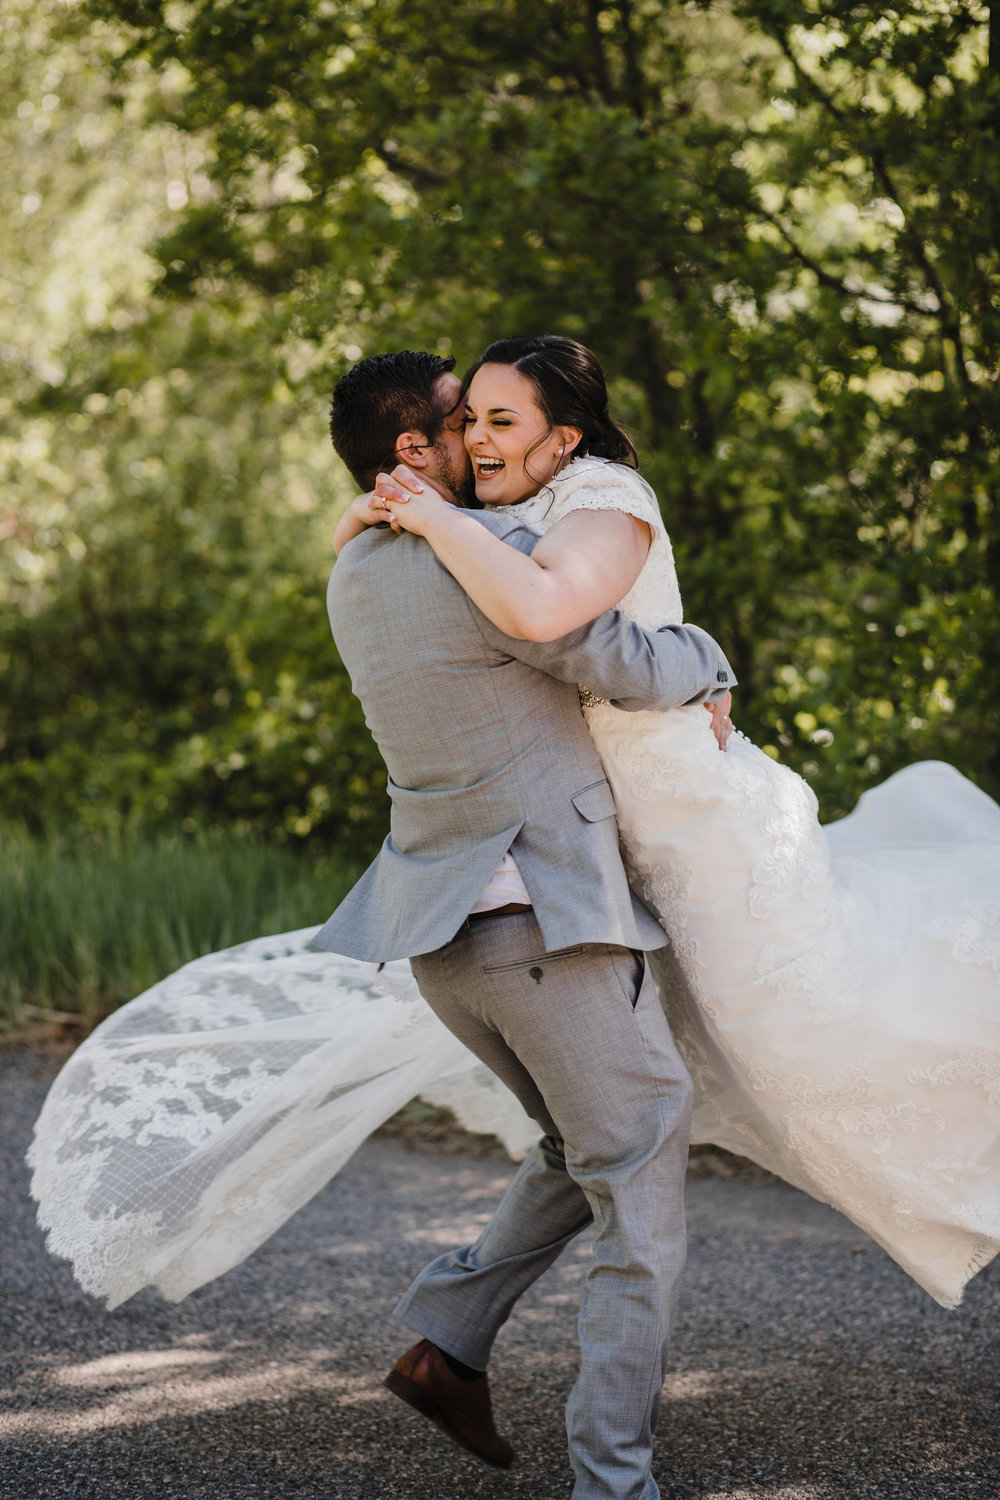 professional photographer in westminister colorado spinning laughter happy bride gray suits